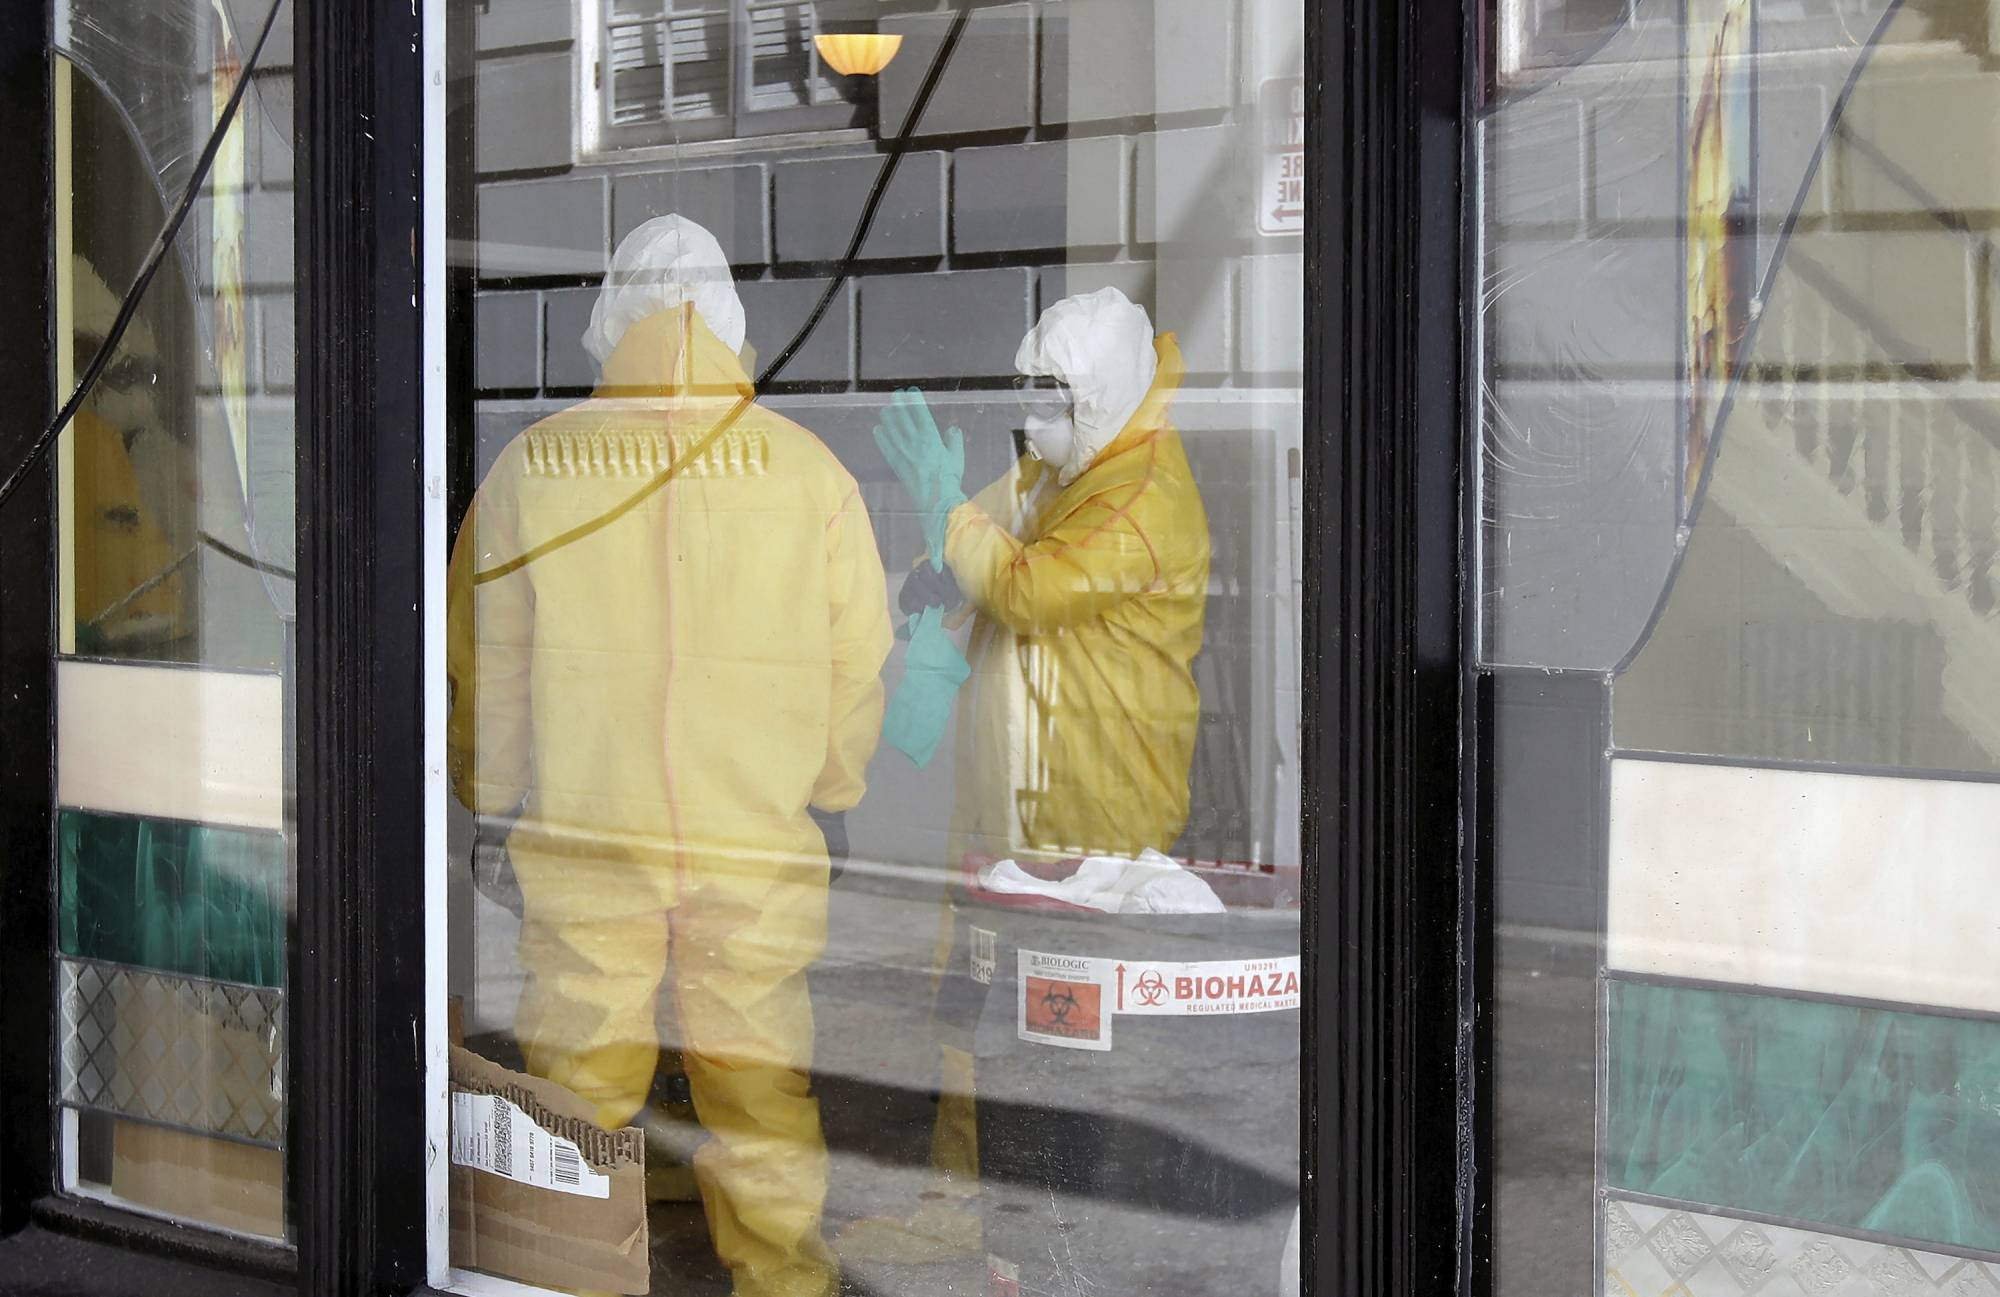 FILE - In this Thursday, April 2, 2020, file photo, workers in hazardous material suits clean inside the Abigail Hotel in San Francisco. The hotel is one of several private hotels San Francisco has contracted with to take vulnerable people who show symptoms or are awaiting test results for the coronavirus. Gov. Gavin Newsom, who made solving the state's homelessness crisis a priority even before the pandemic struck, announced in mid-March his administration was negotiating with 900 hotels to house the homeless. Two weeks ago he announced Project Roomkey, a program in which the Federal Emergency Management Agency will pay 75% of costs associated with housing some homeless, including people who test positive or may have been exposed to the virus, and older homeless people and those with underlying health conditions. (AP Photo/Jeff Chiu, File)